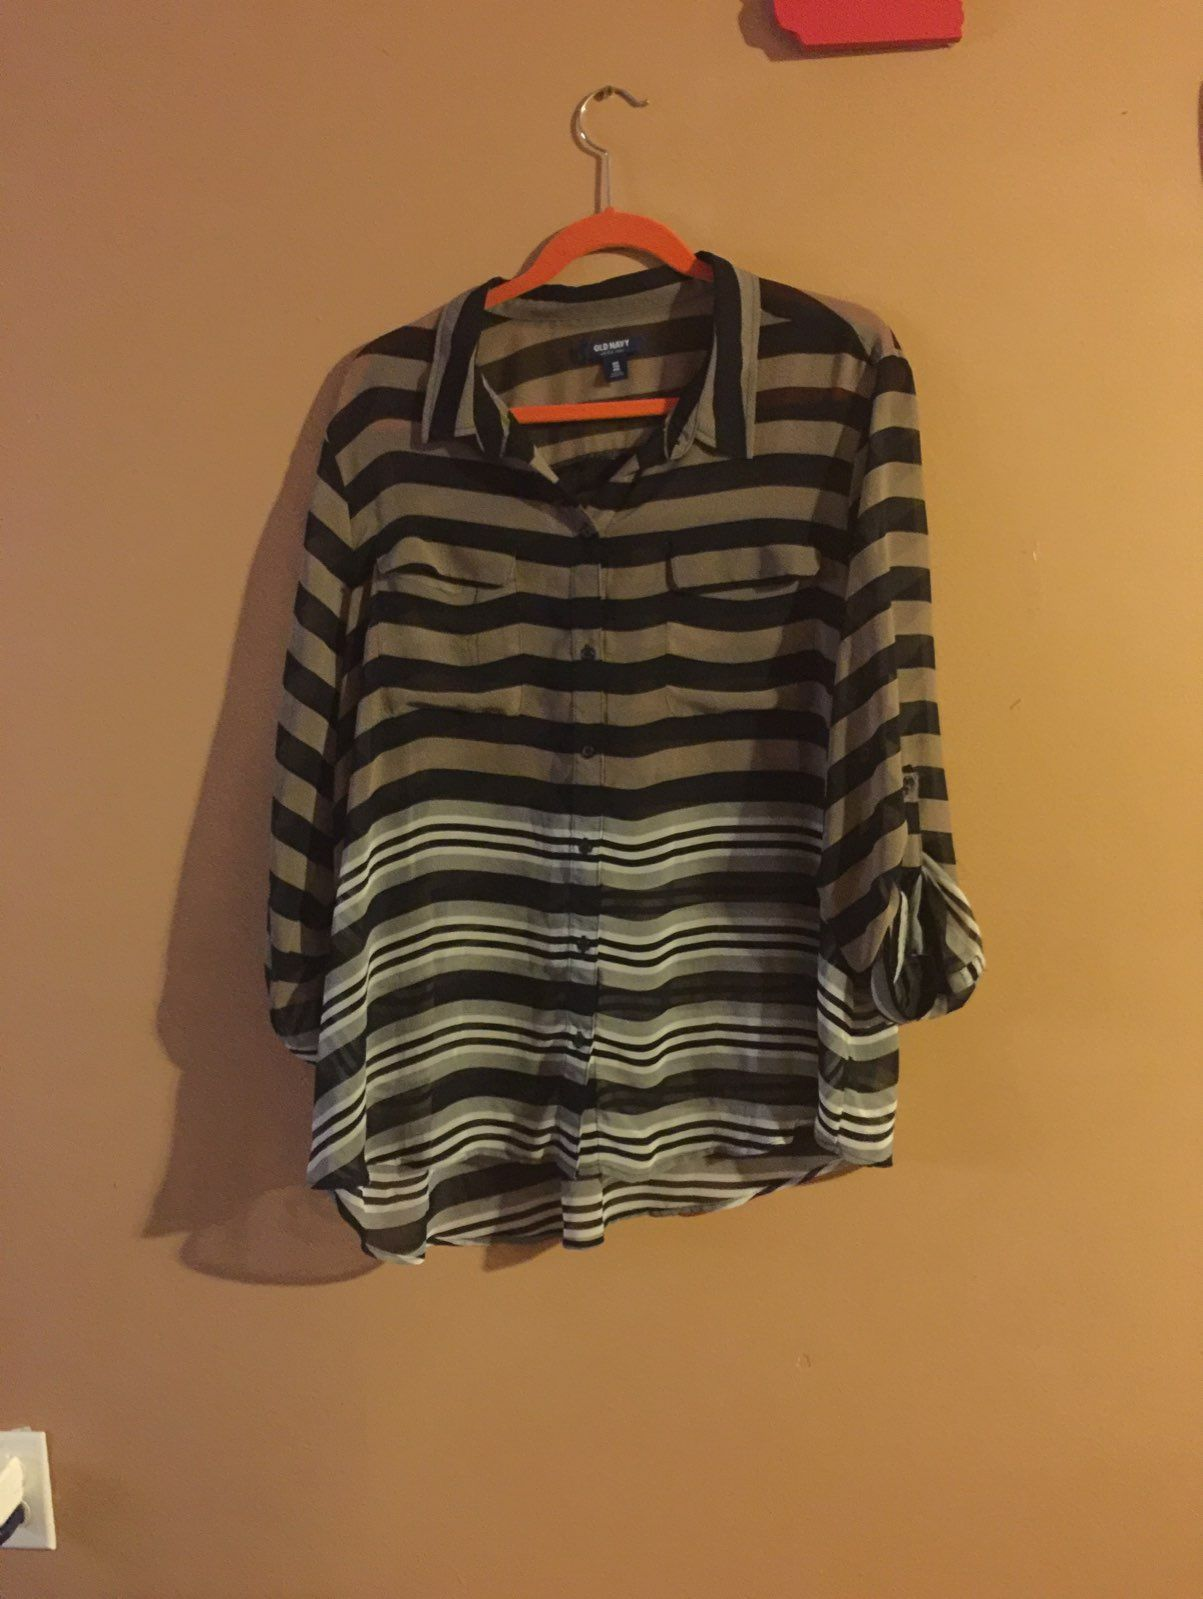 Xxl Old Navy / Black Sweater - Mercari: BUY & SELL THINGS YOU LOVE